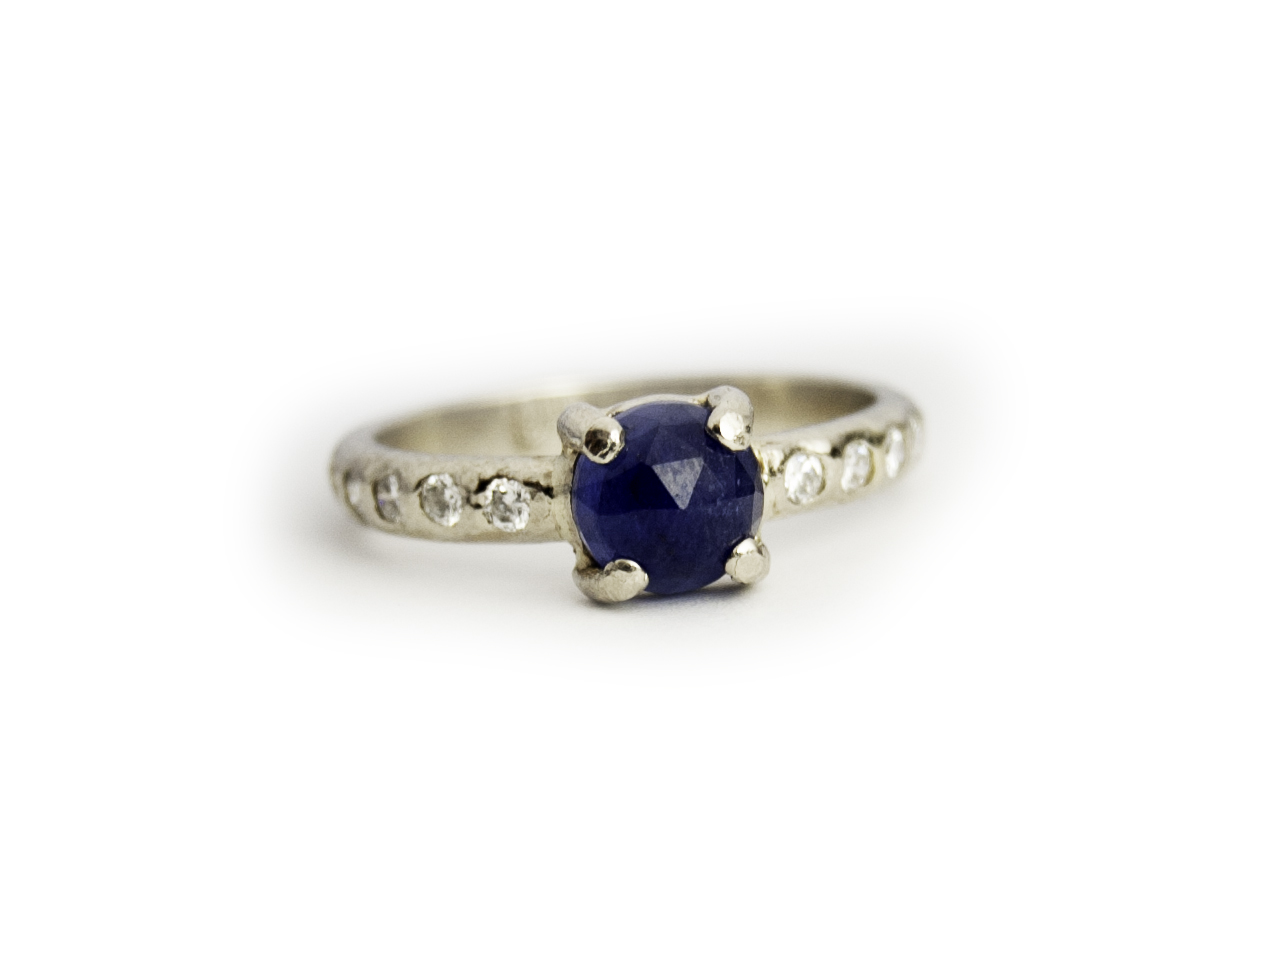 A sapphire engagement ring LMJ created for a custom client.